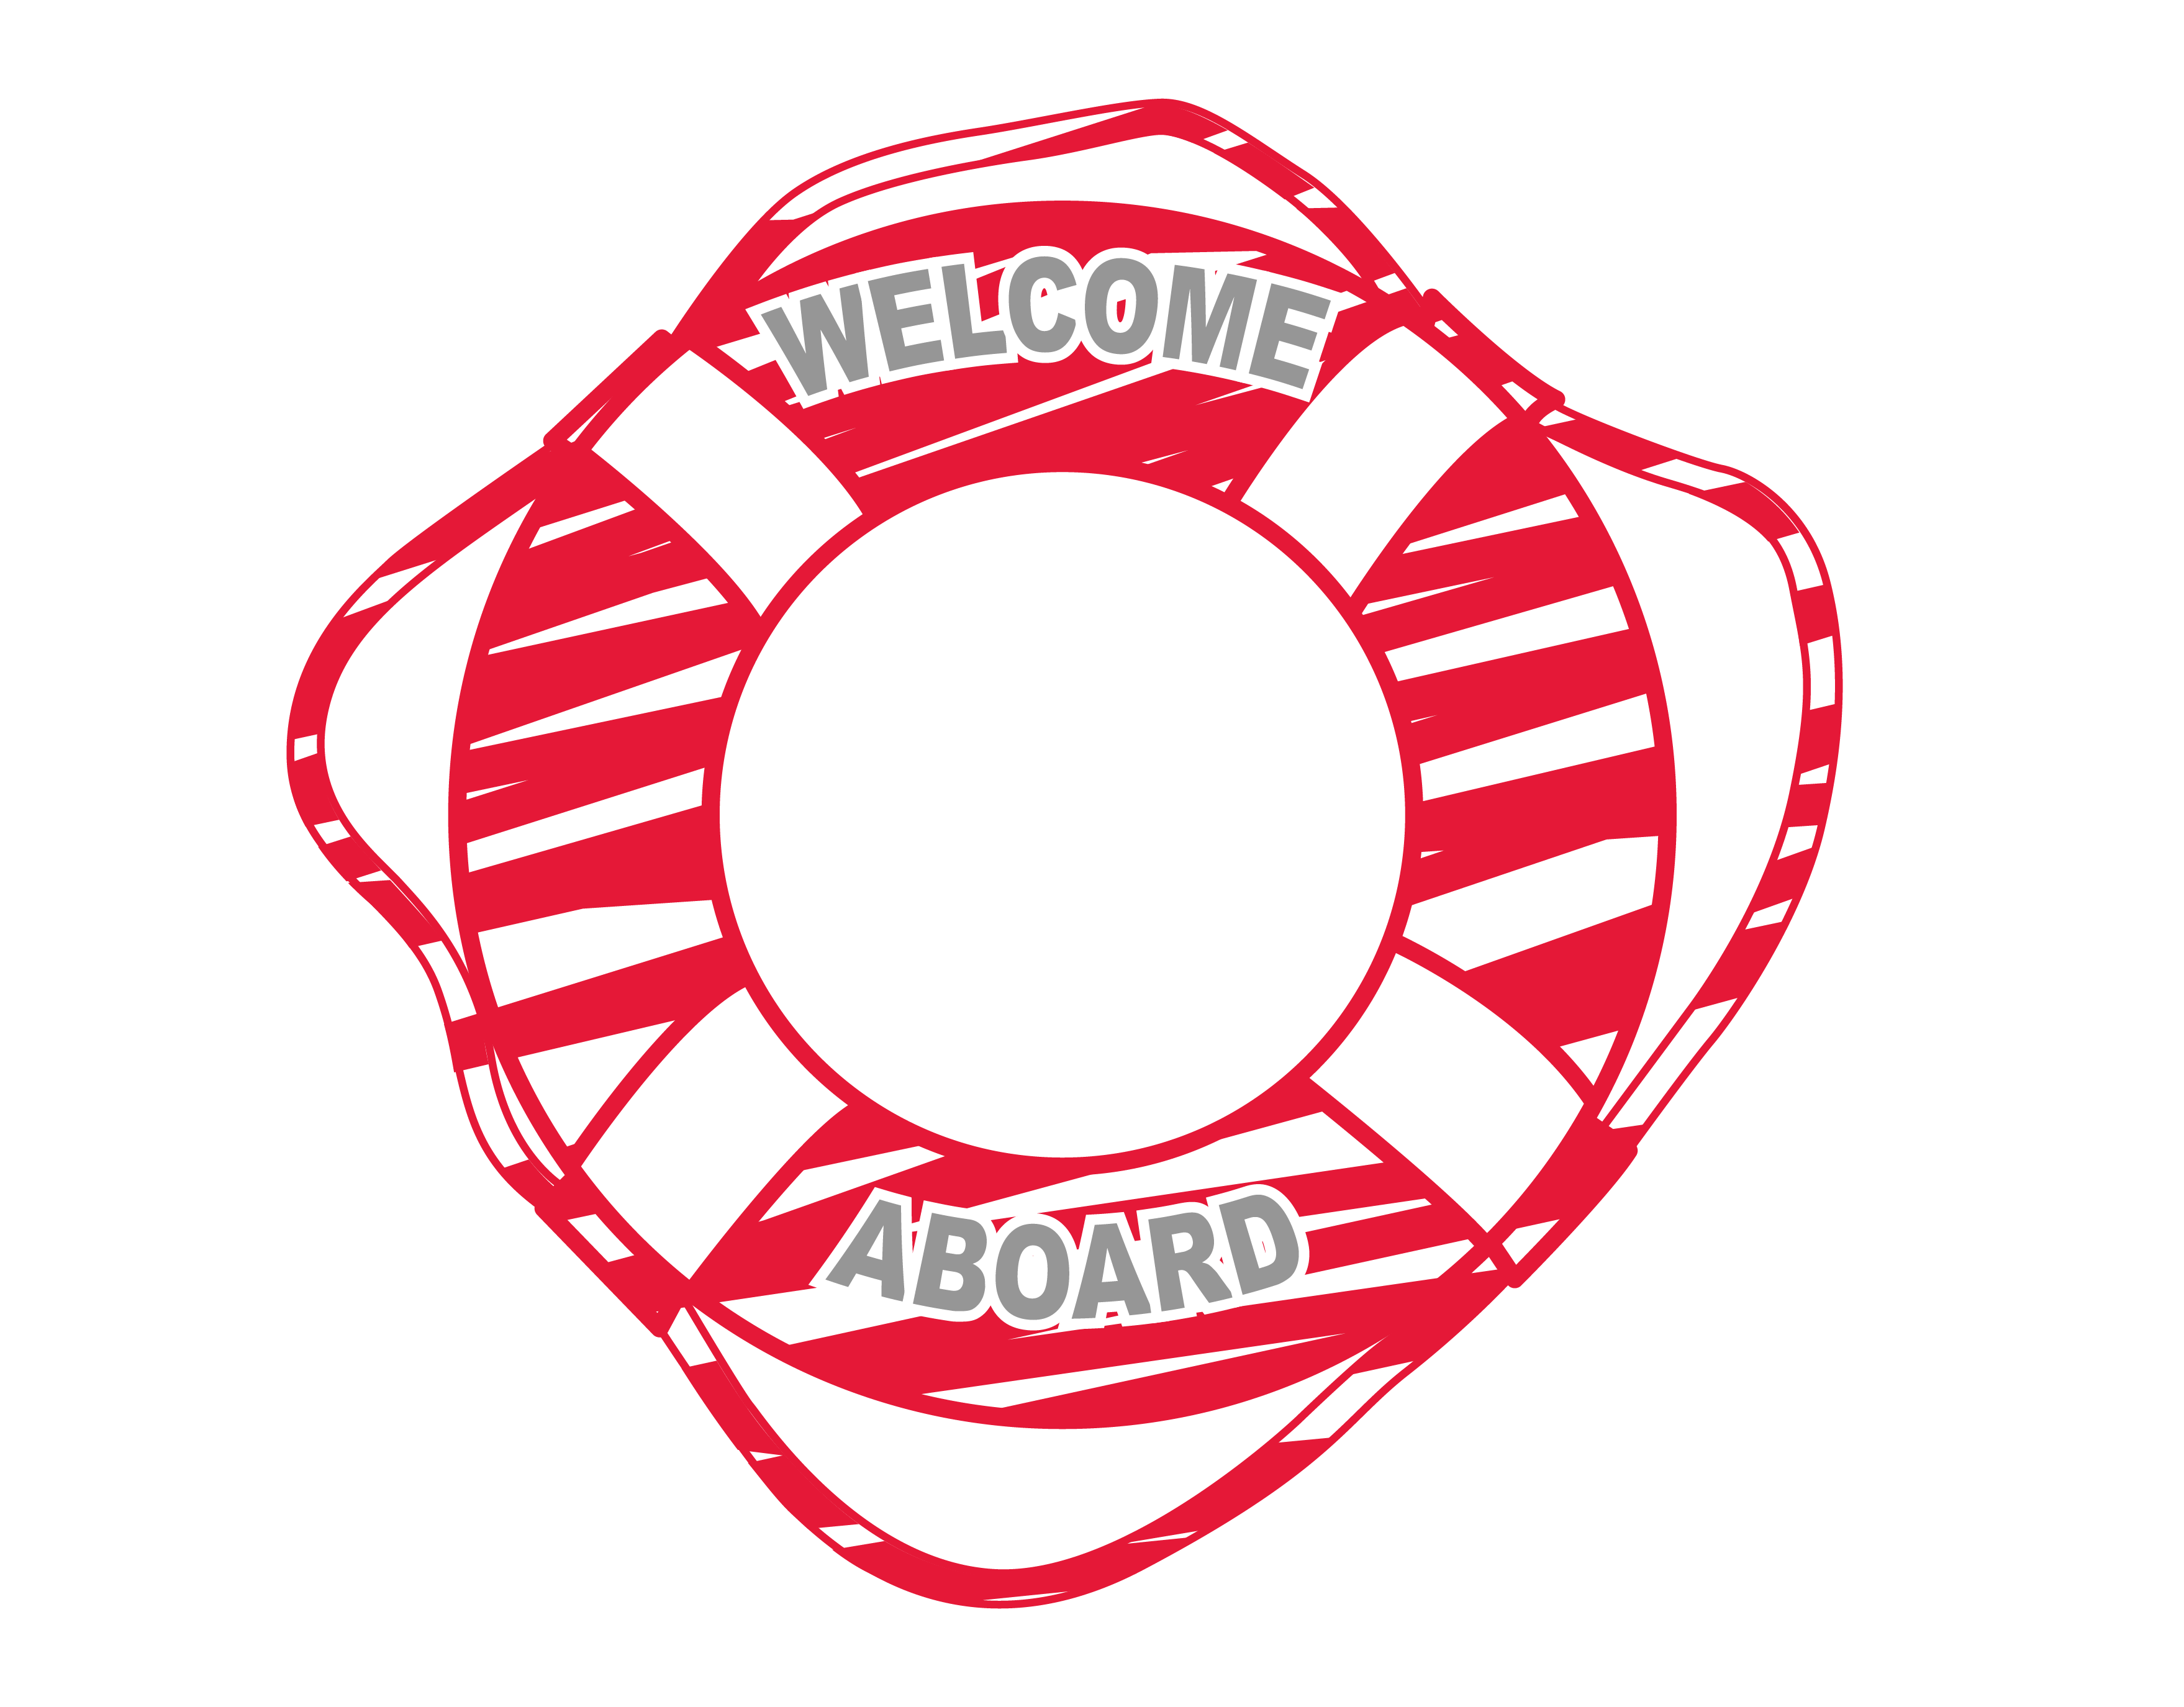 Welcome aboard png. Onboarding a drawing of